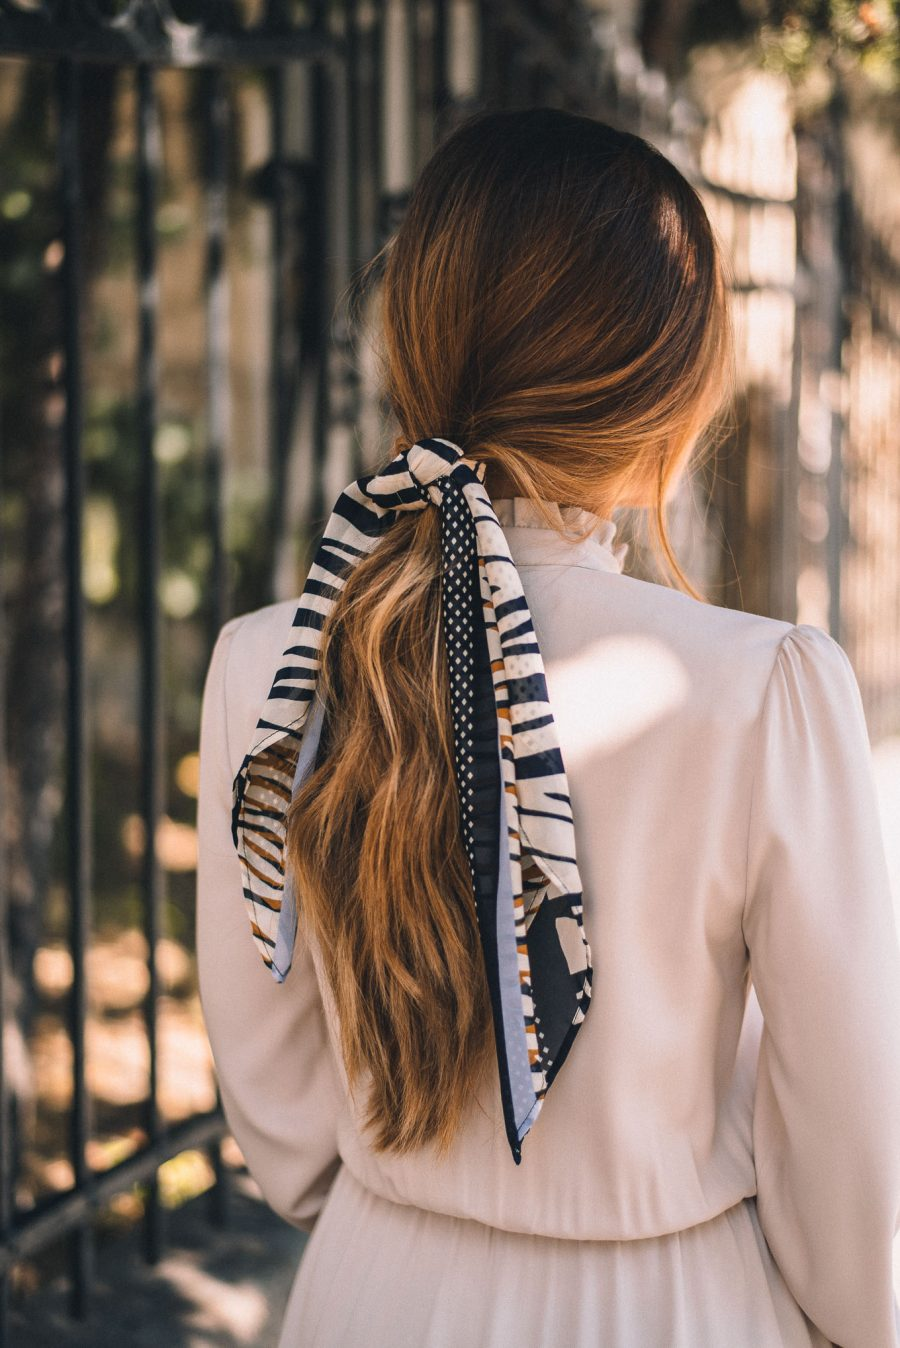 Hair style with a scarf